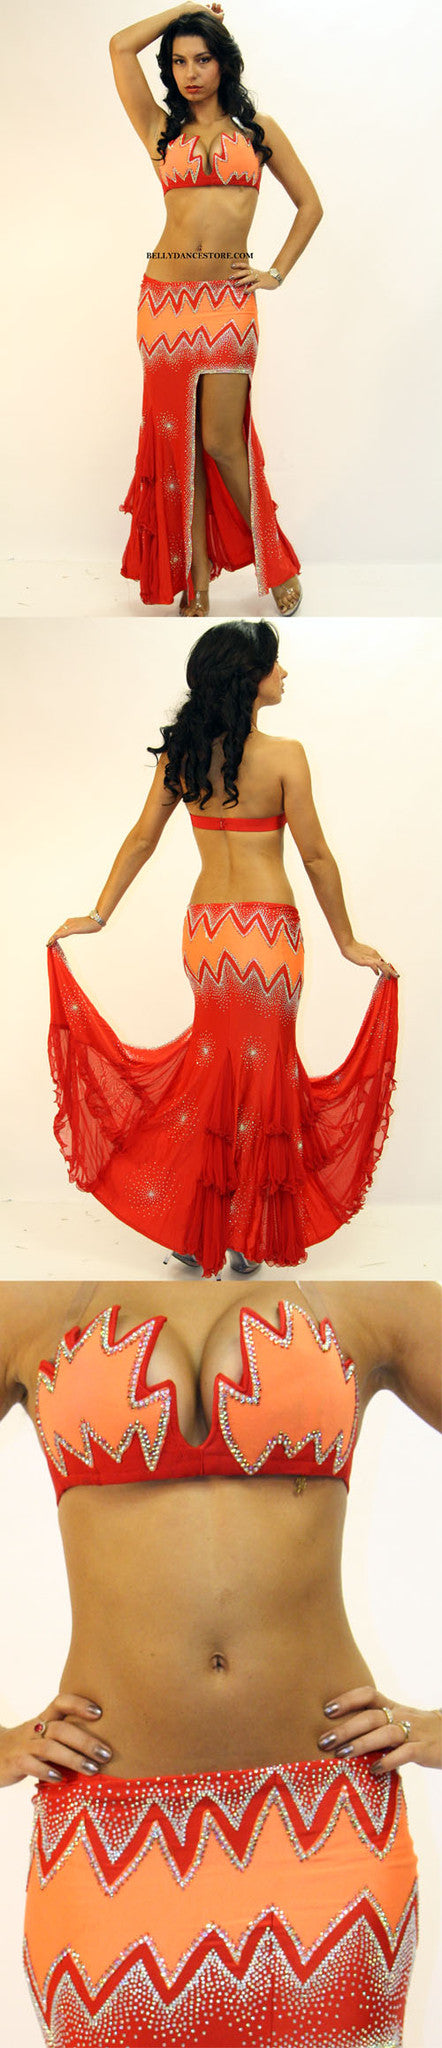 Hisham Osman Two-Piece Costume